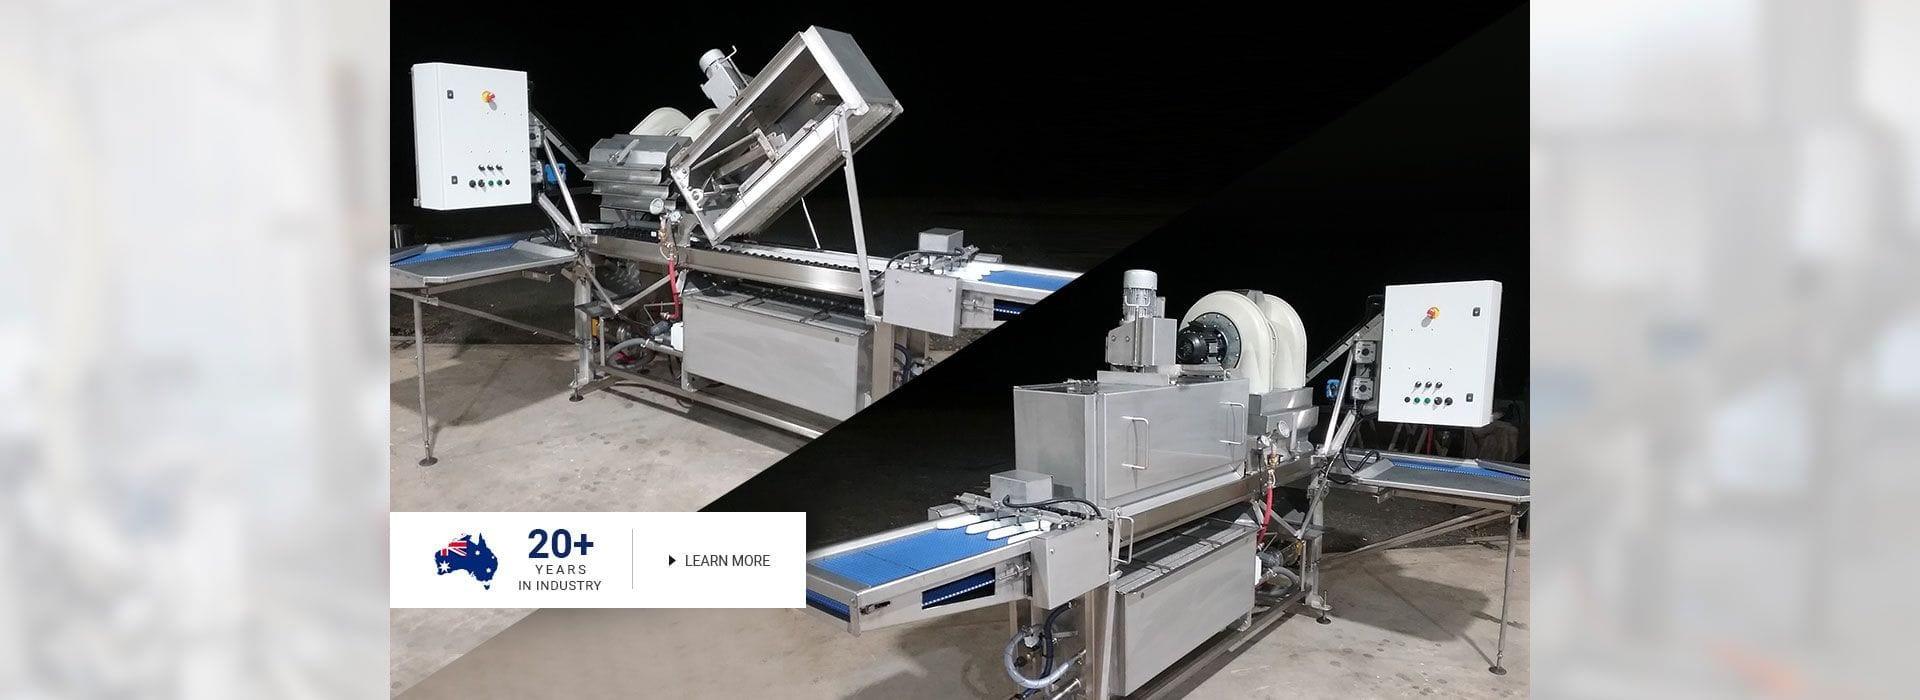 AgriFPE have 20+ years in food processing industry